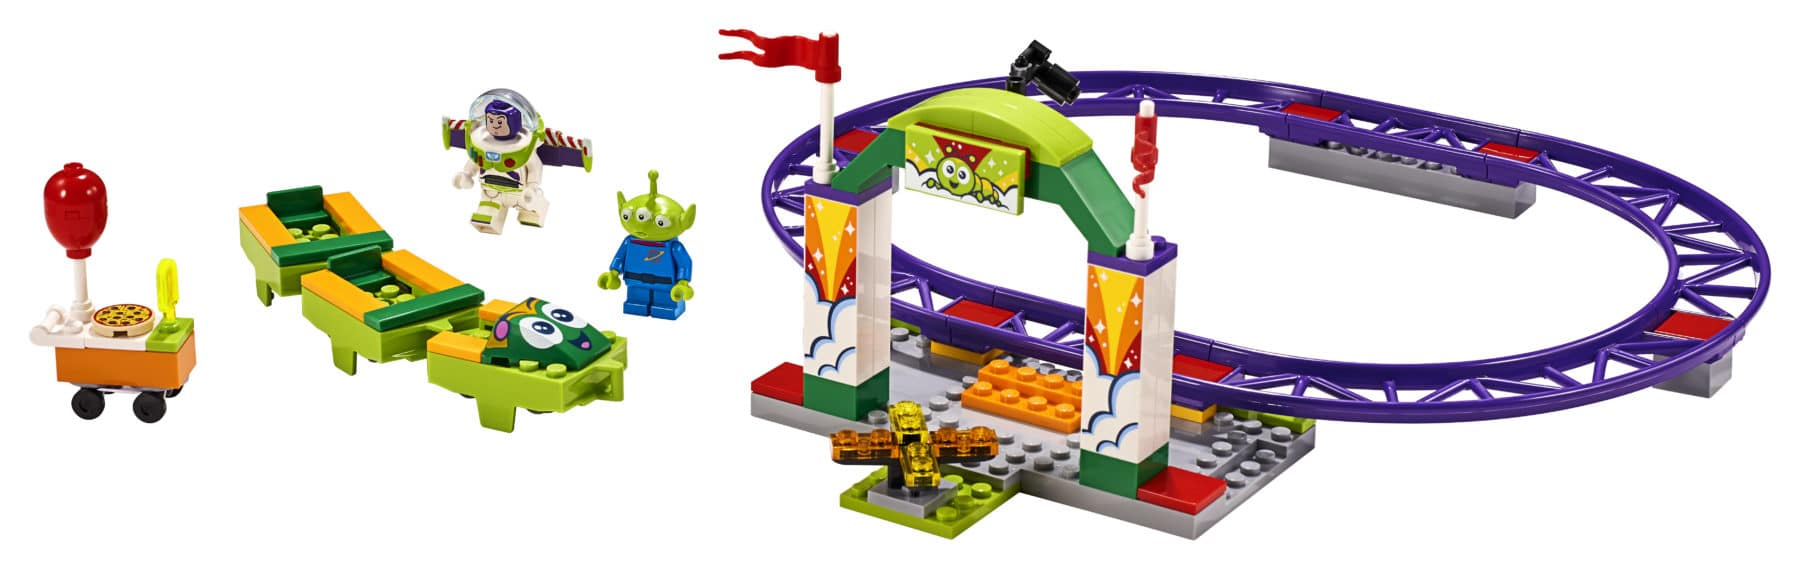 LEGO Toy Story 4 10771 Carnival Thrill Coaster